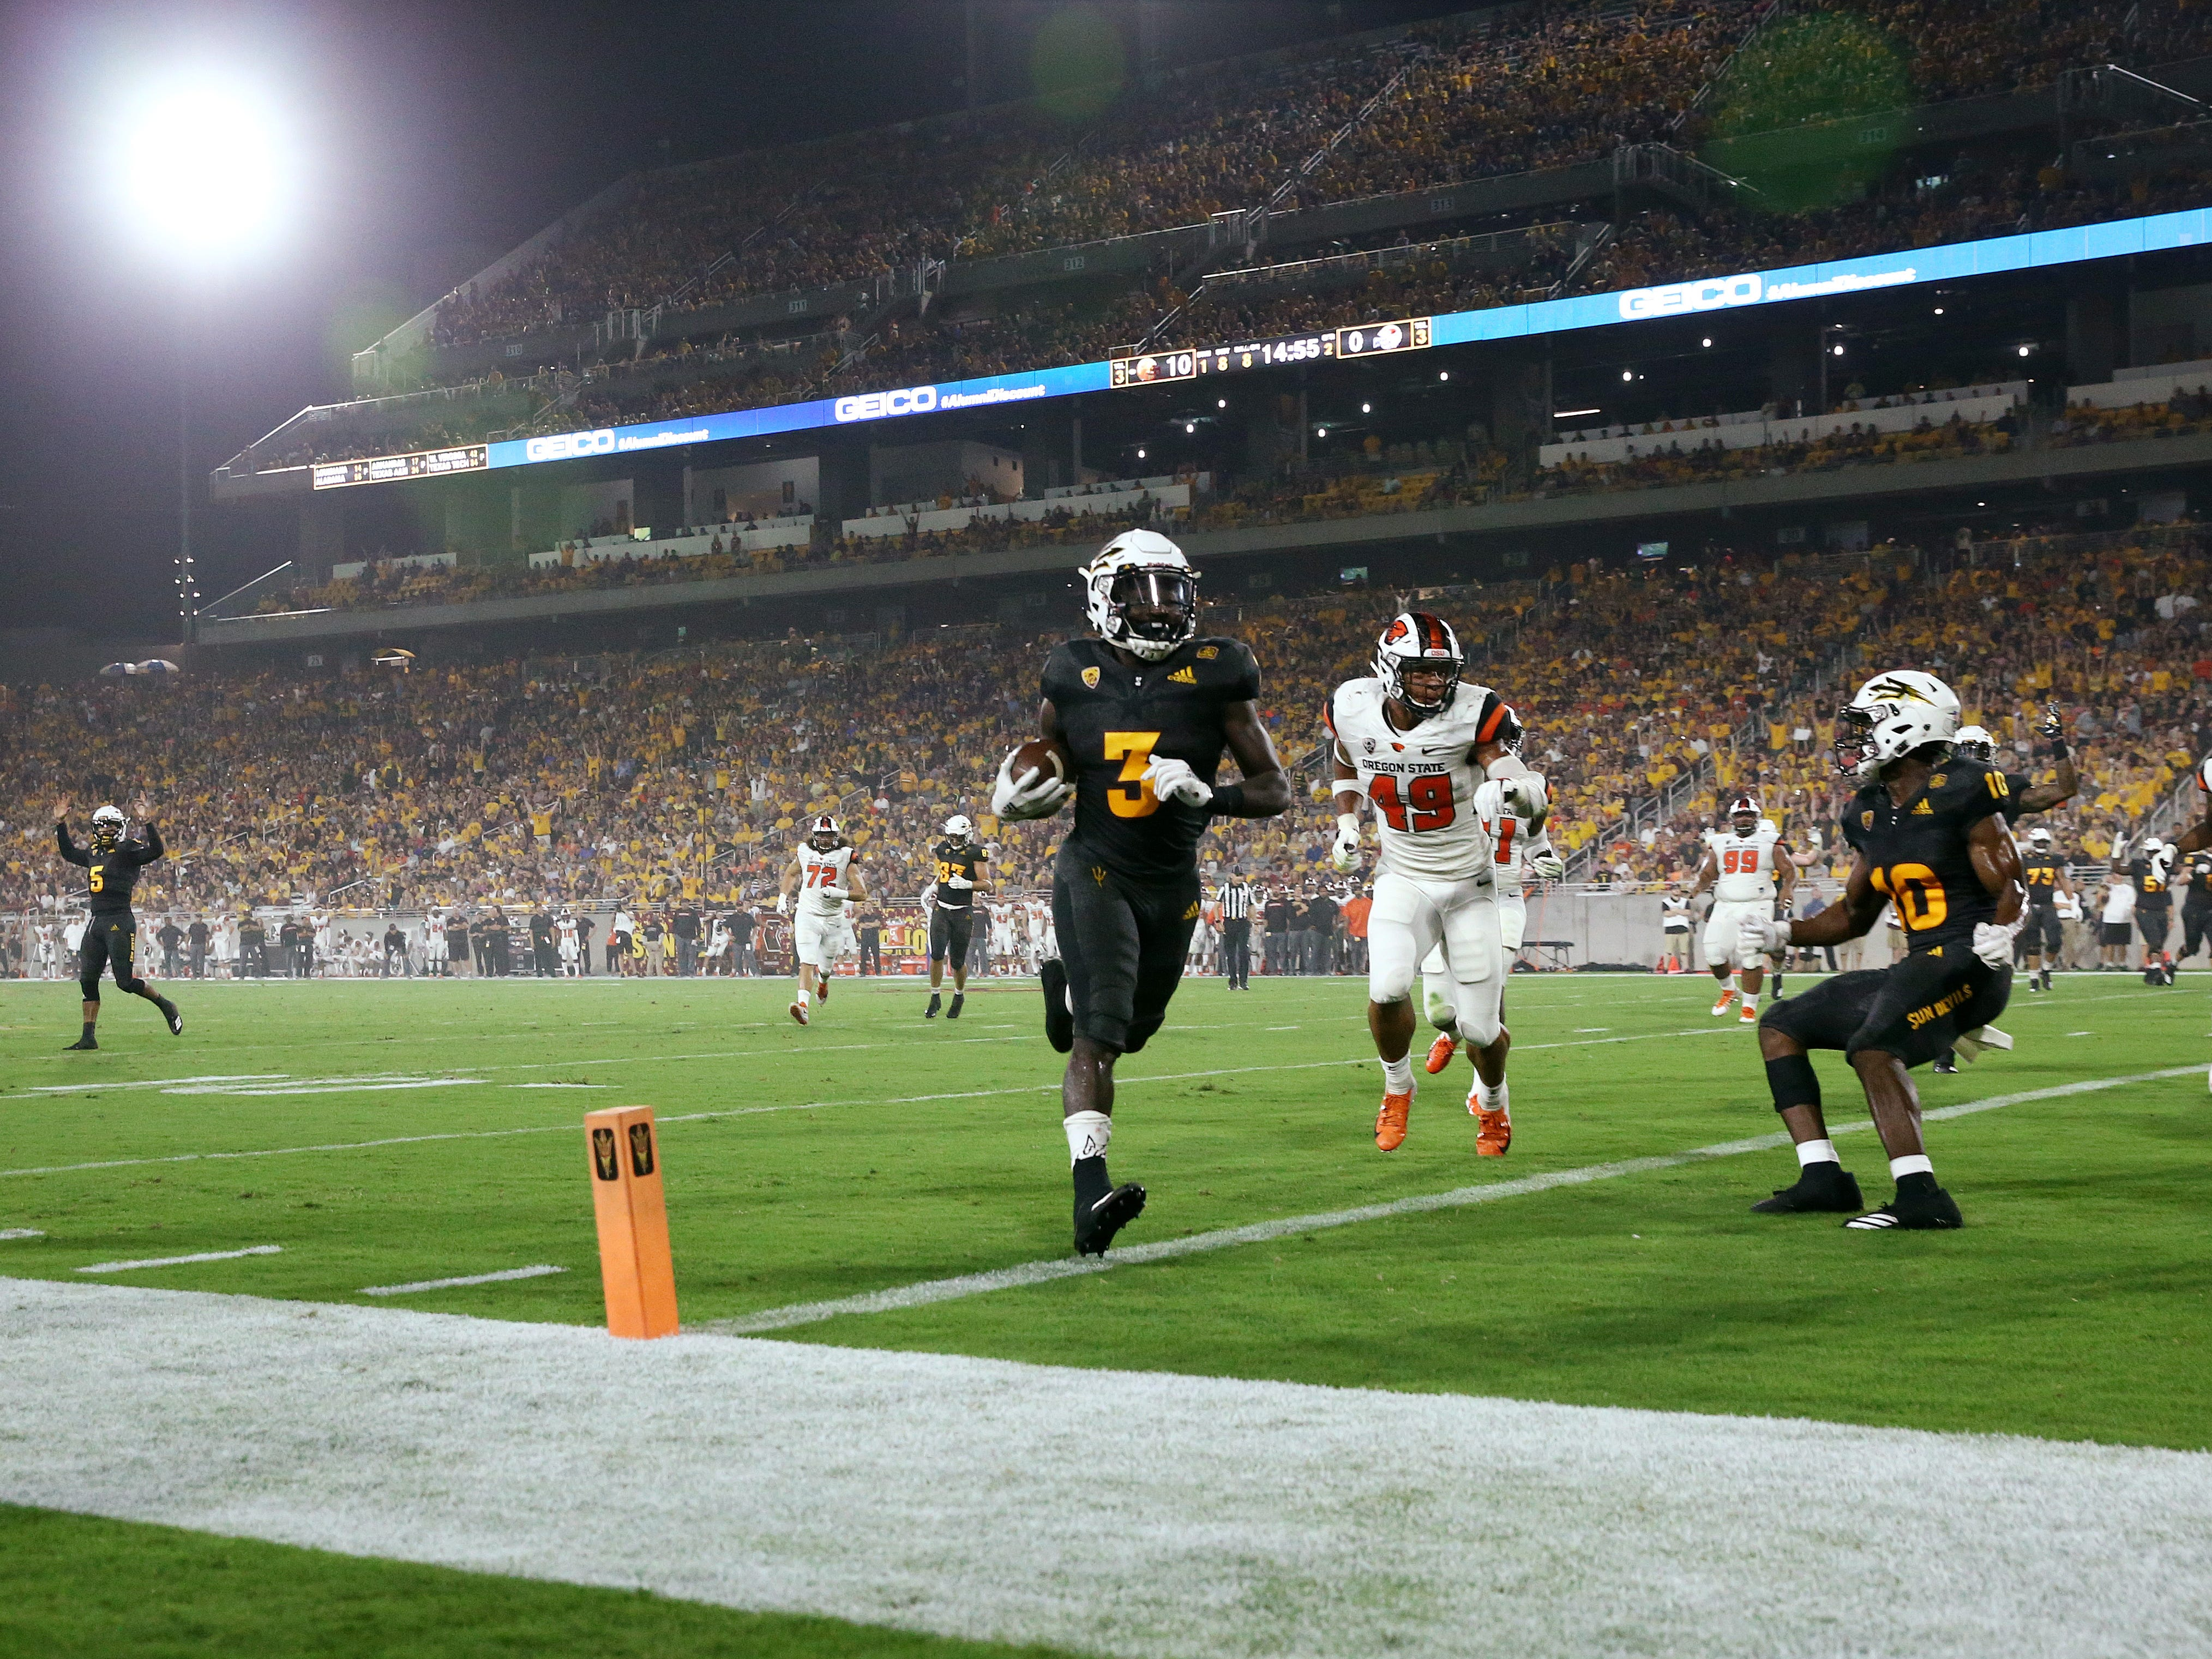 Arizona State running back Eno Benjamin scores a touchdown against Oregon State in the first half on Sep. 29, 2018, at Sun Devil Stadium.